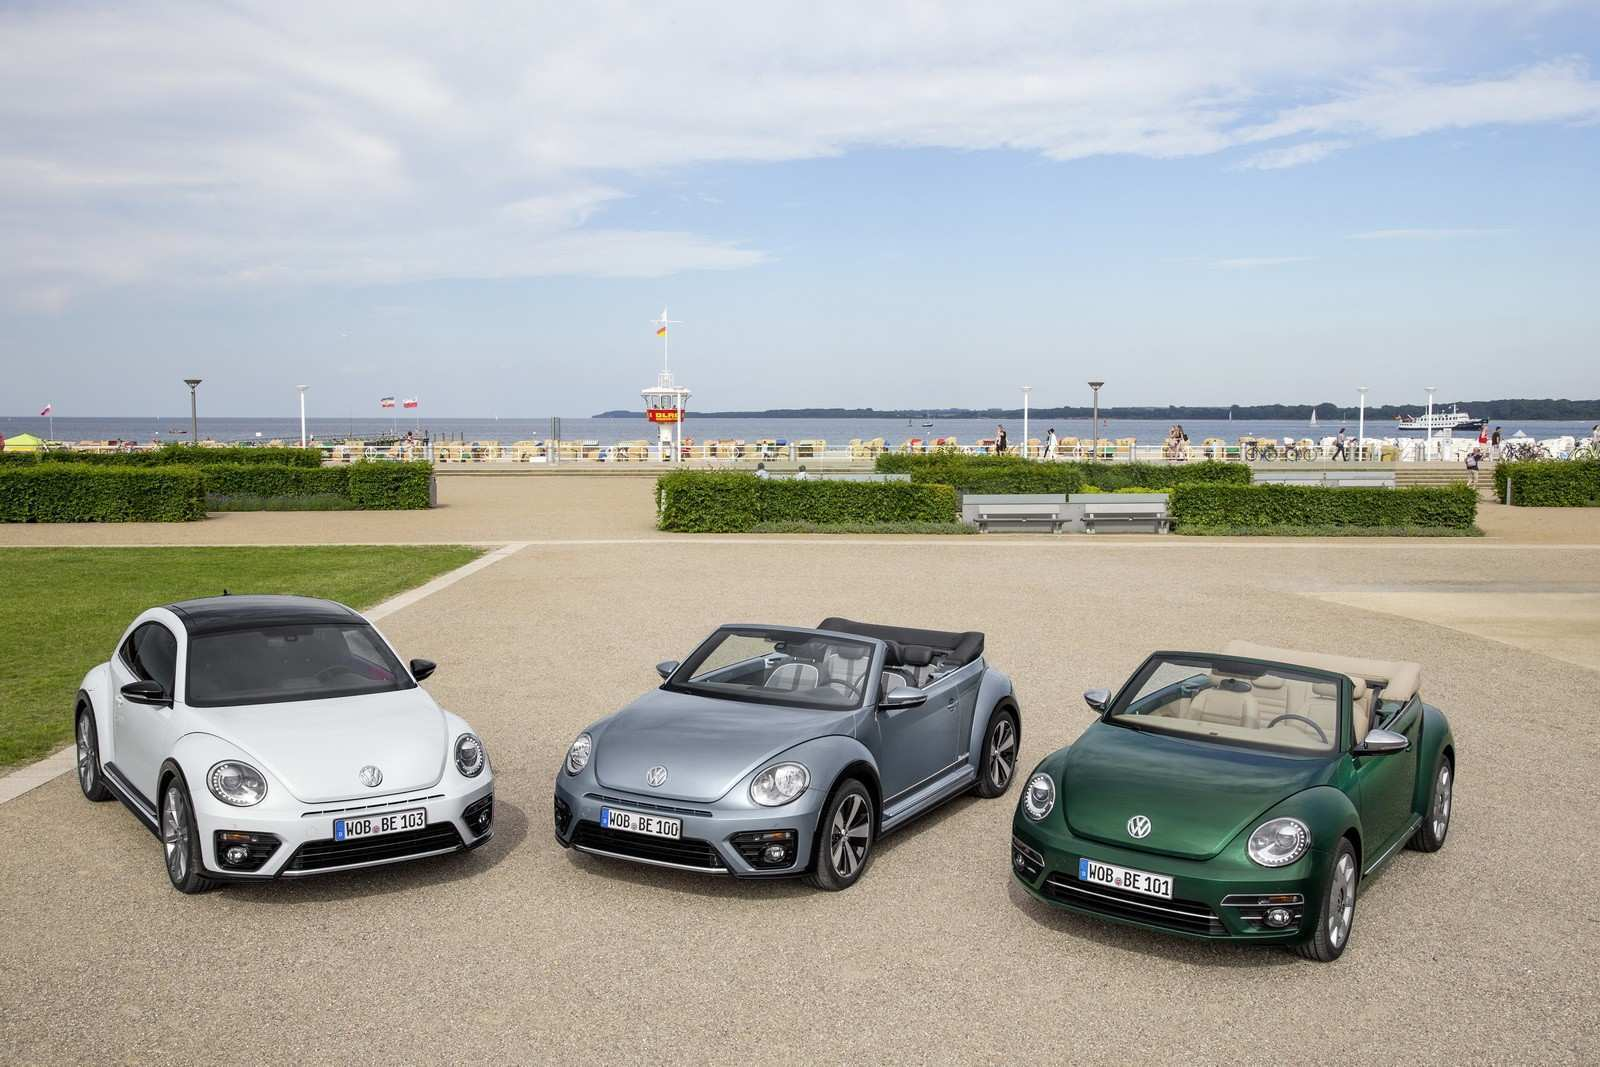 28 New 2020 Volkswagen Beetle Convertible Exterior and Interior with 2020 Volkswagen Beetle Convertible